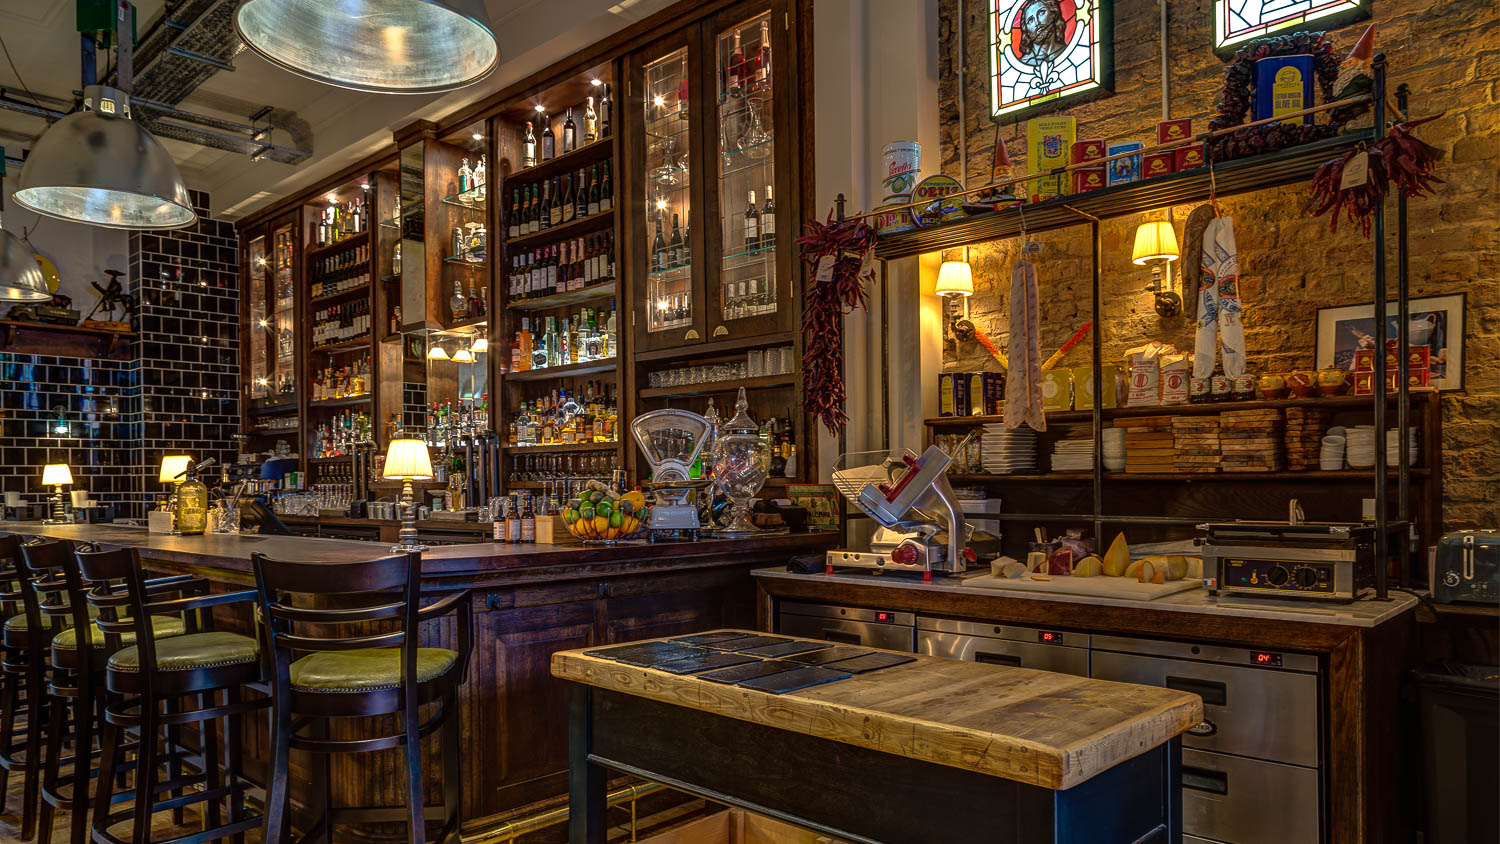 Bar and charcuterie station at award-winning restaurant El Gato Negro